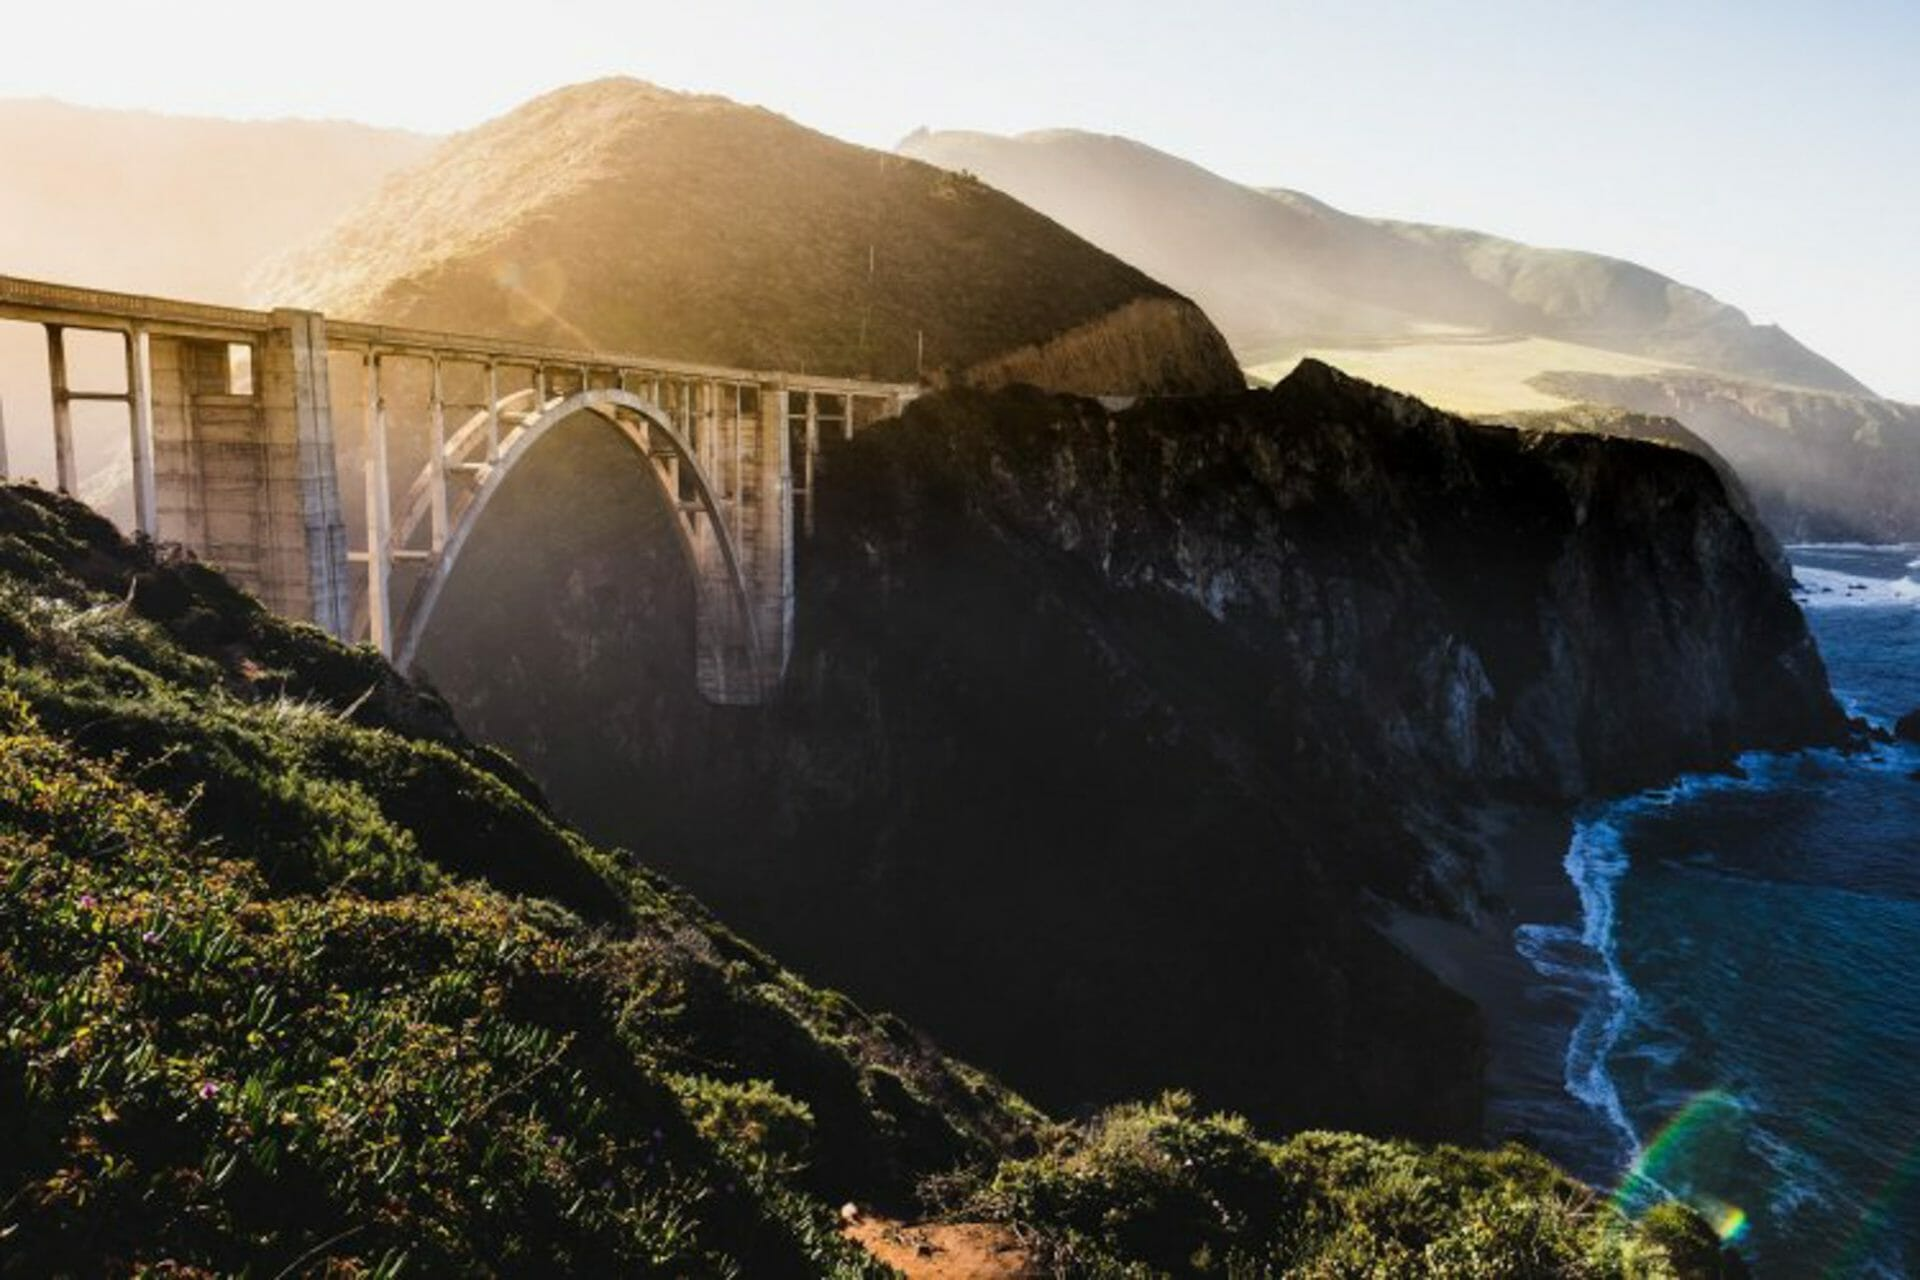 A Complete California Road Trip Itinerary For 10 Days